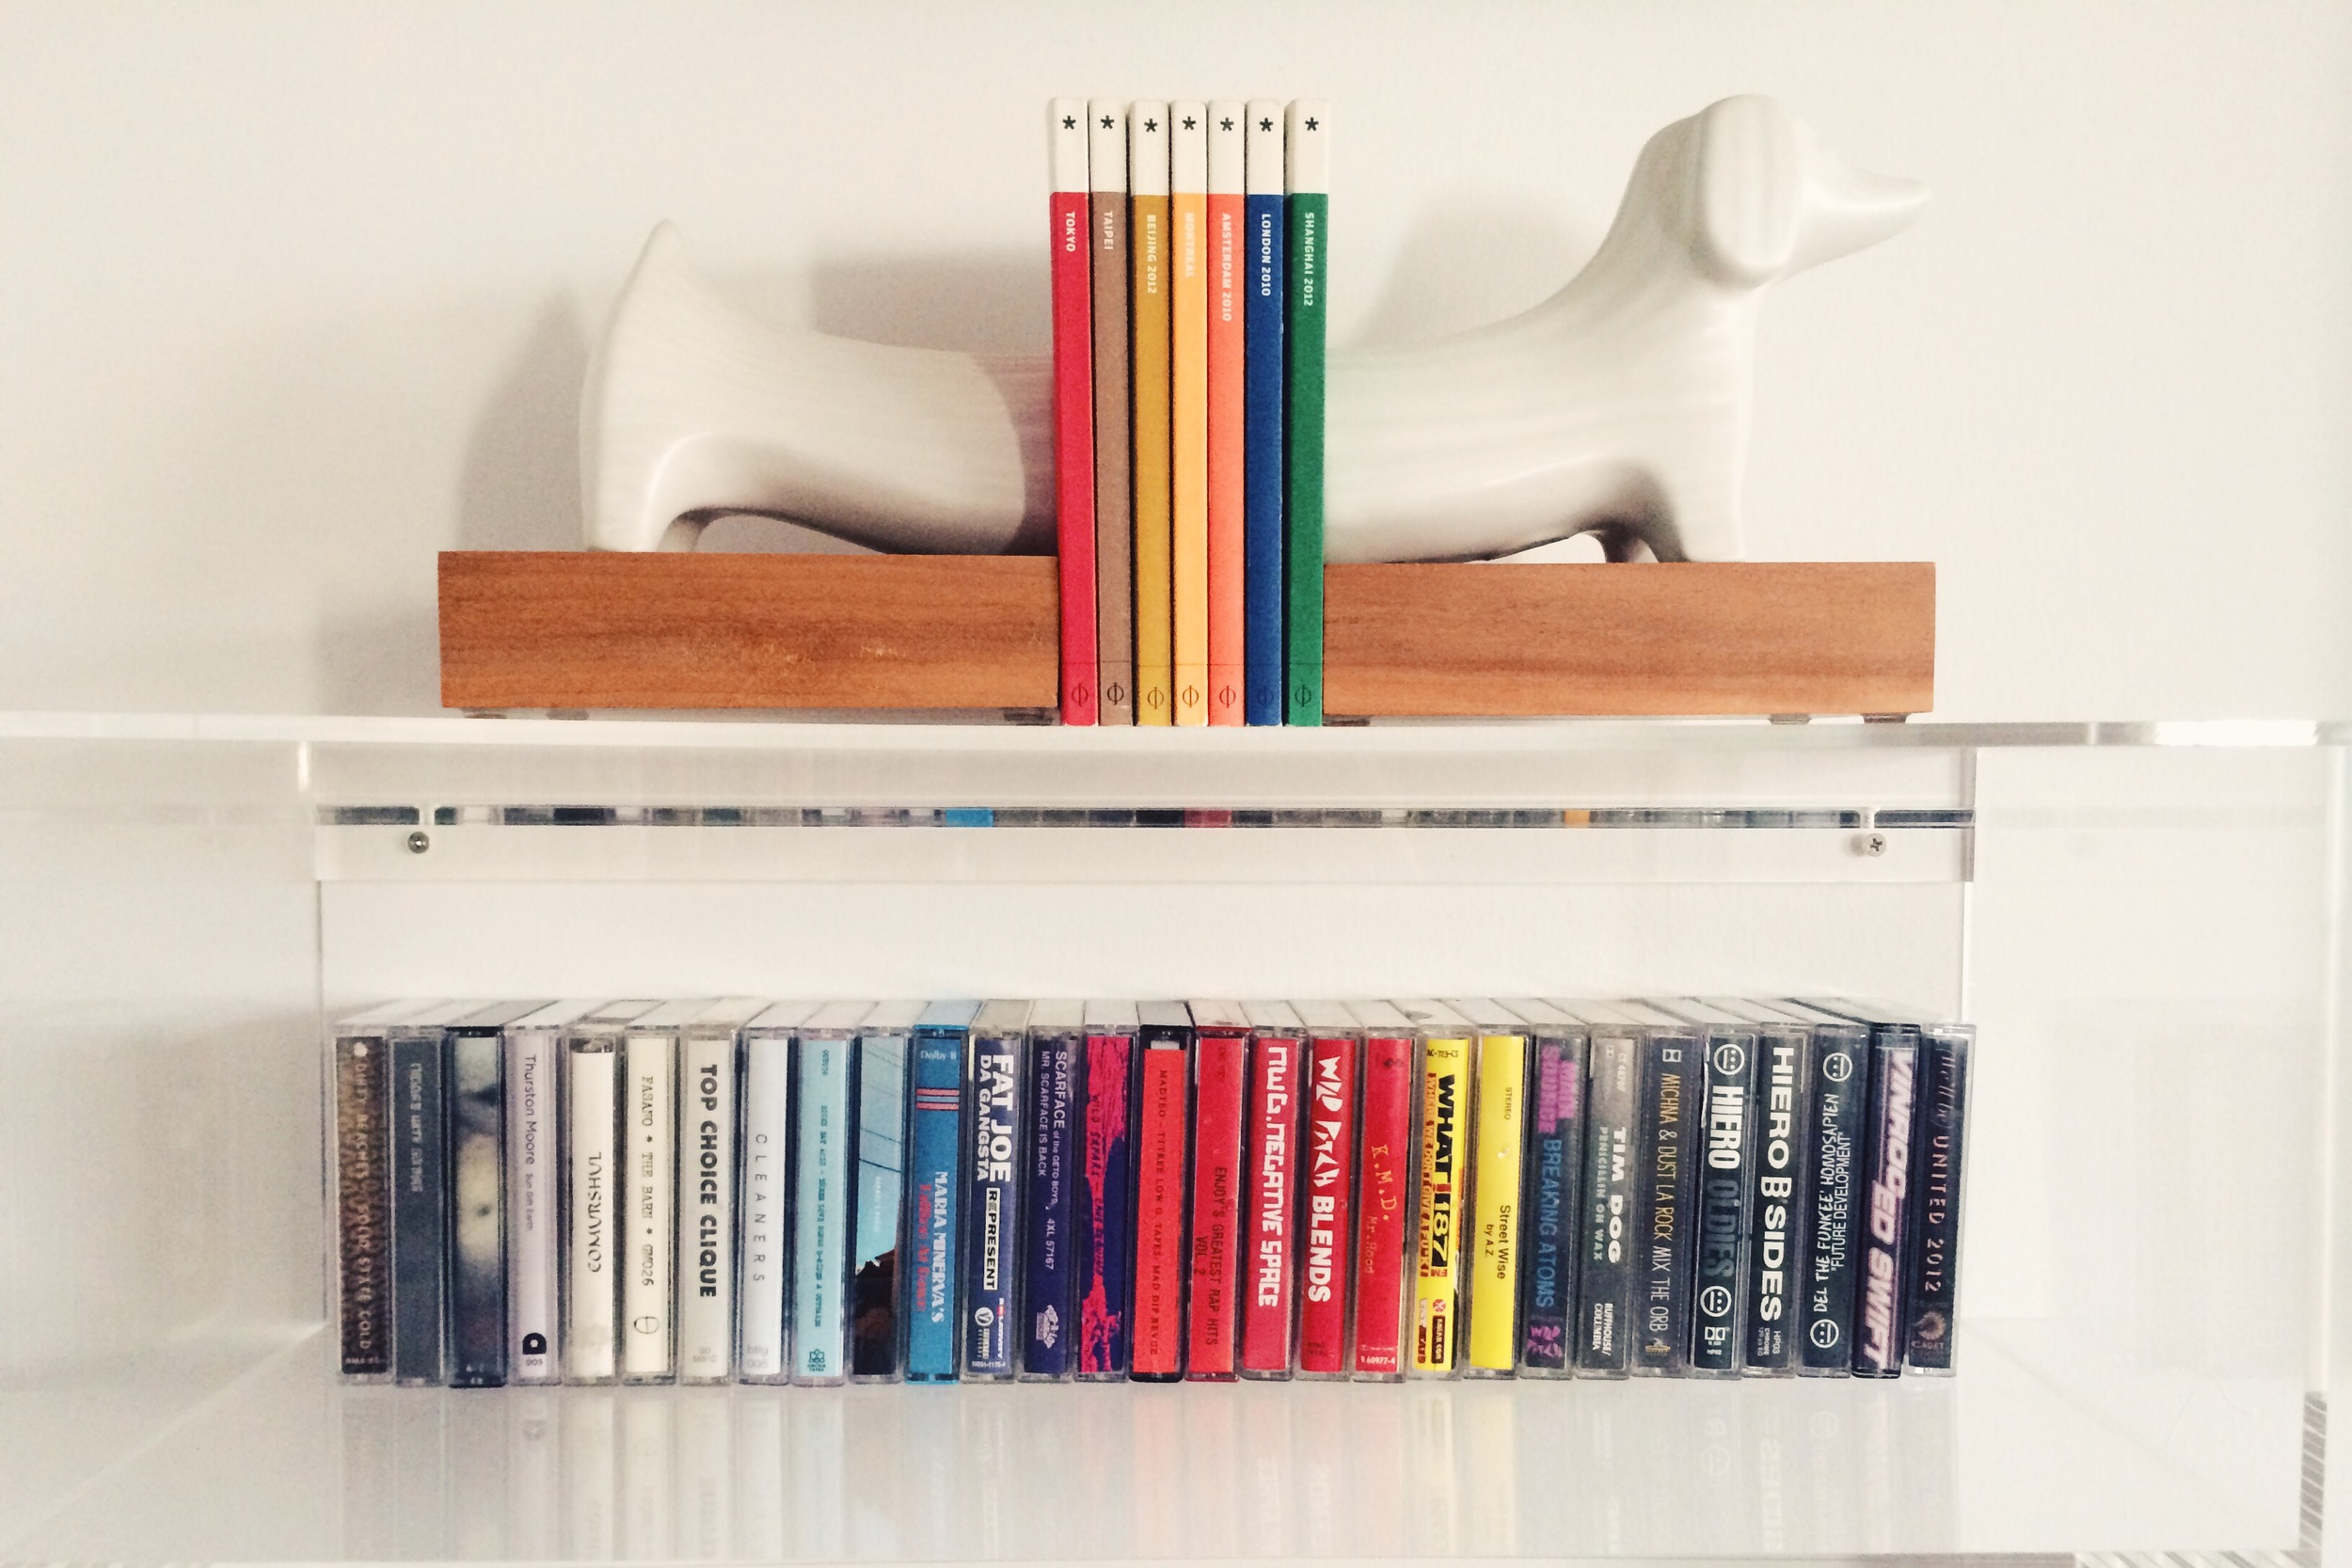 i grabbed the dachshund bookends from a  jonathan adler  warehouse sale a few years back. the  acrylic shelf  is from cb2. the books are  wallpaper city guides , and the tapes are hhh's.